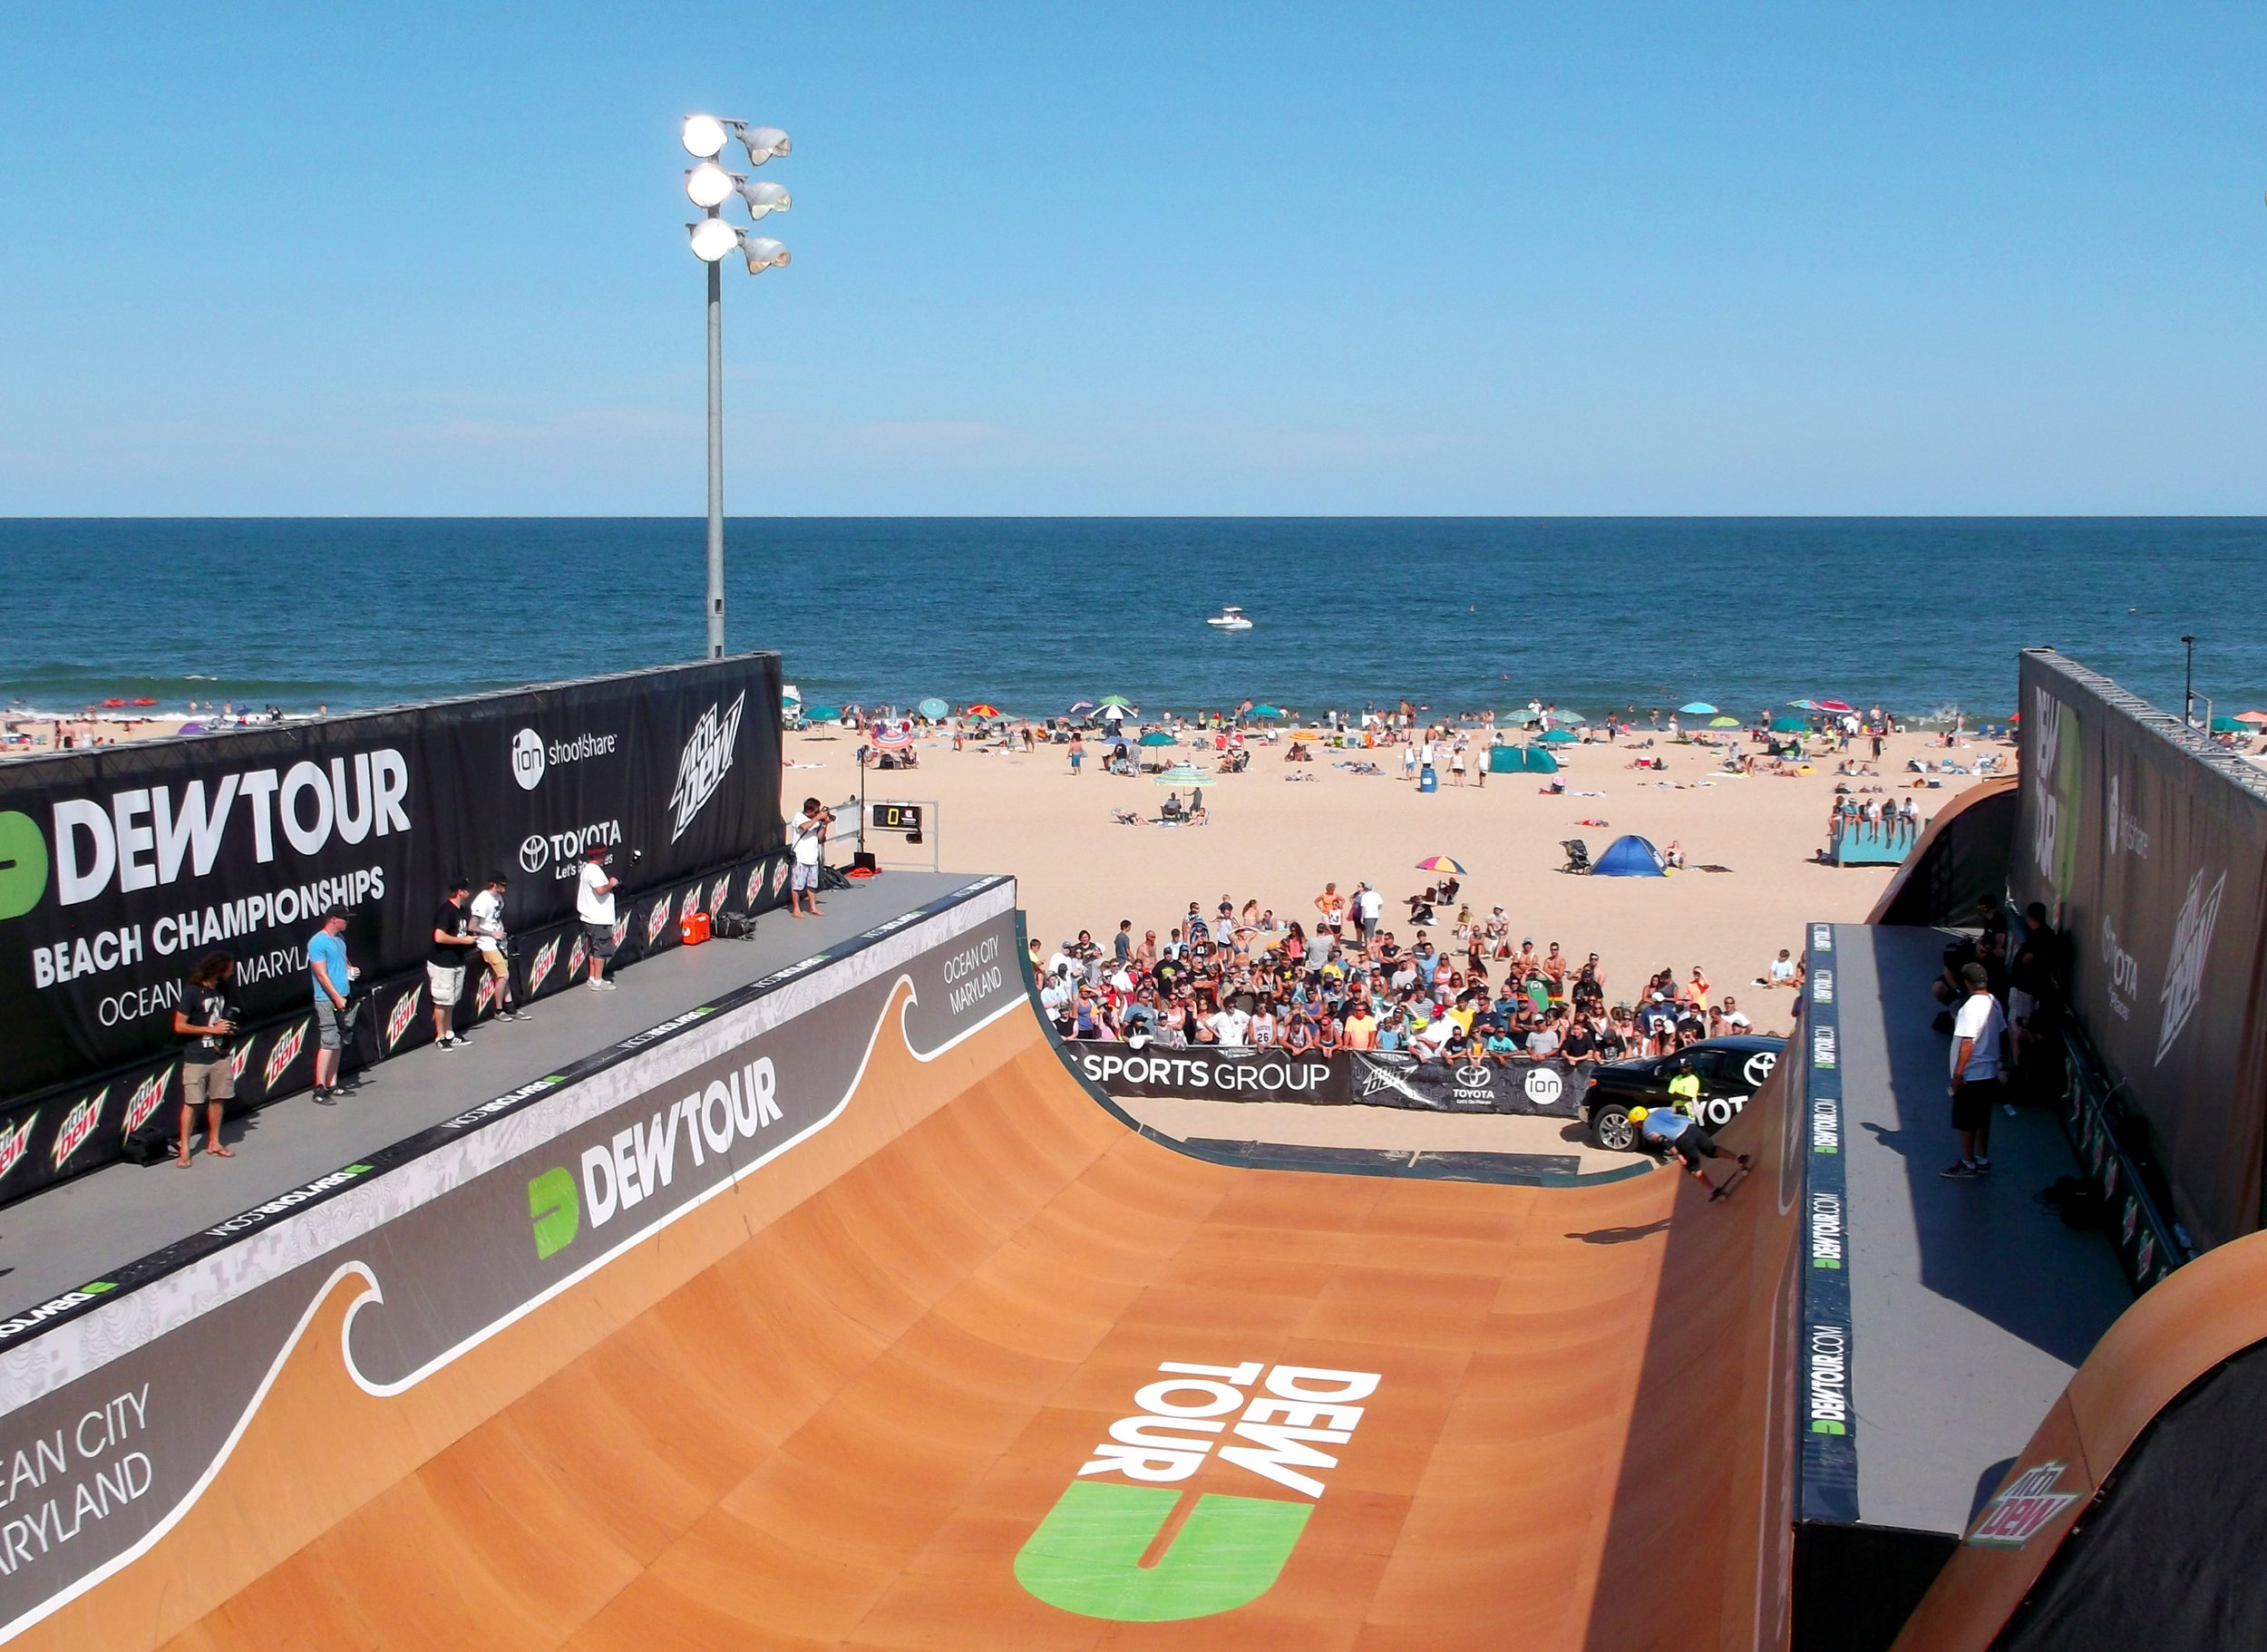 toyota @ dew tour    - STRATEGY, EVENTS -